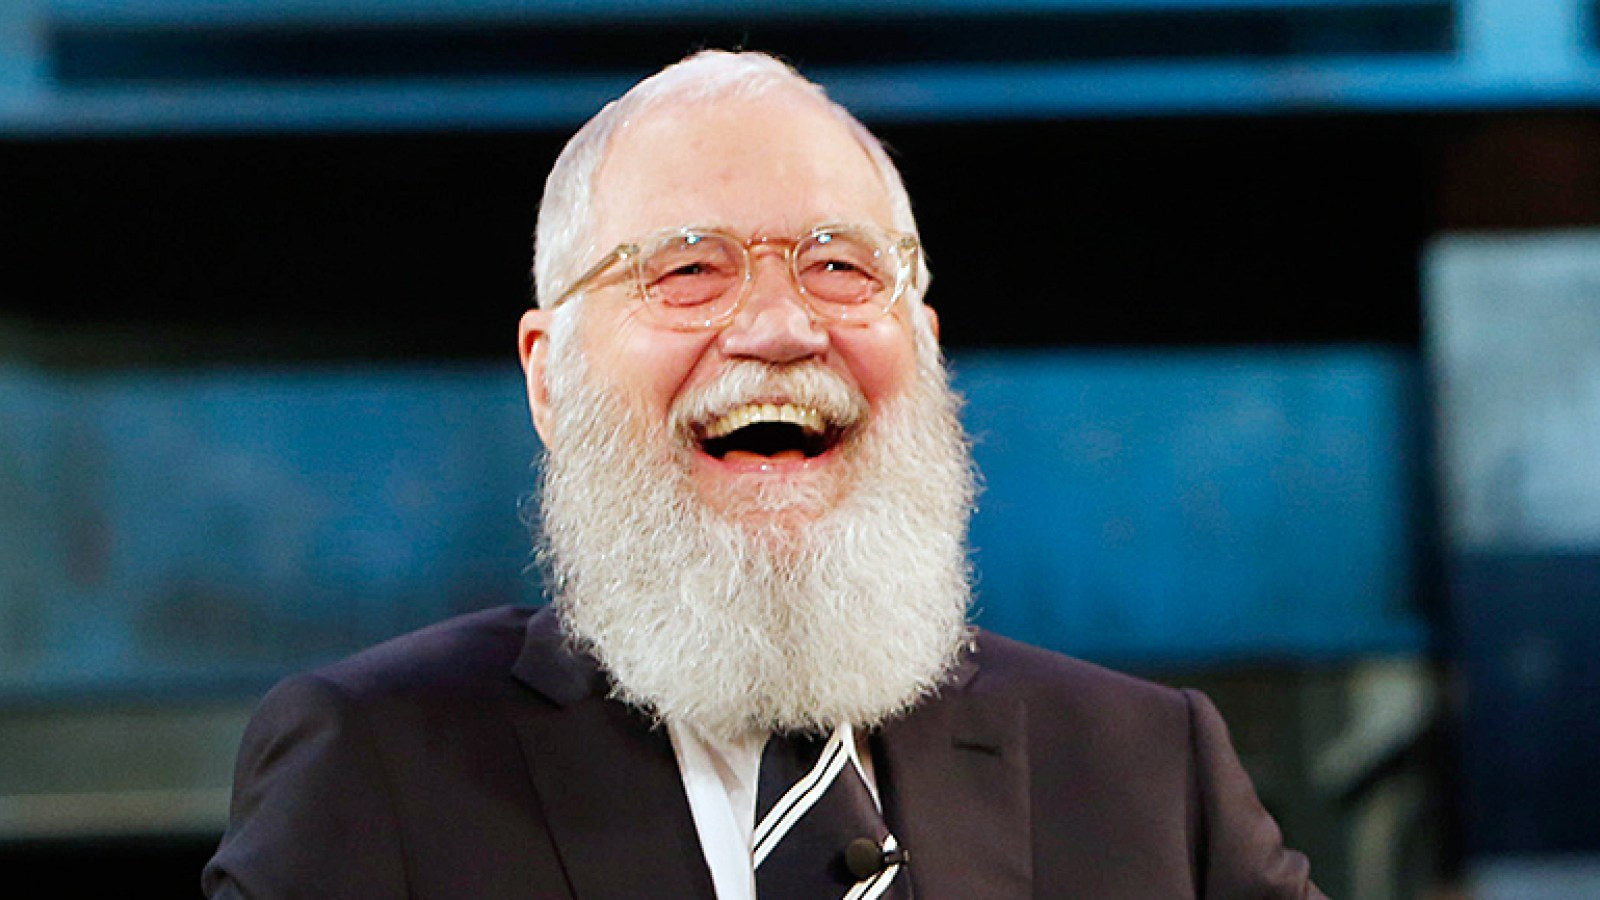 David Letterman to return with new talk show on Netflix with Obama as first guest